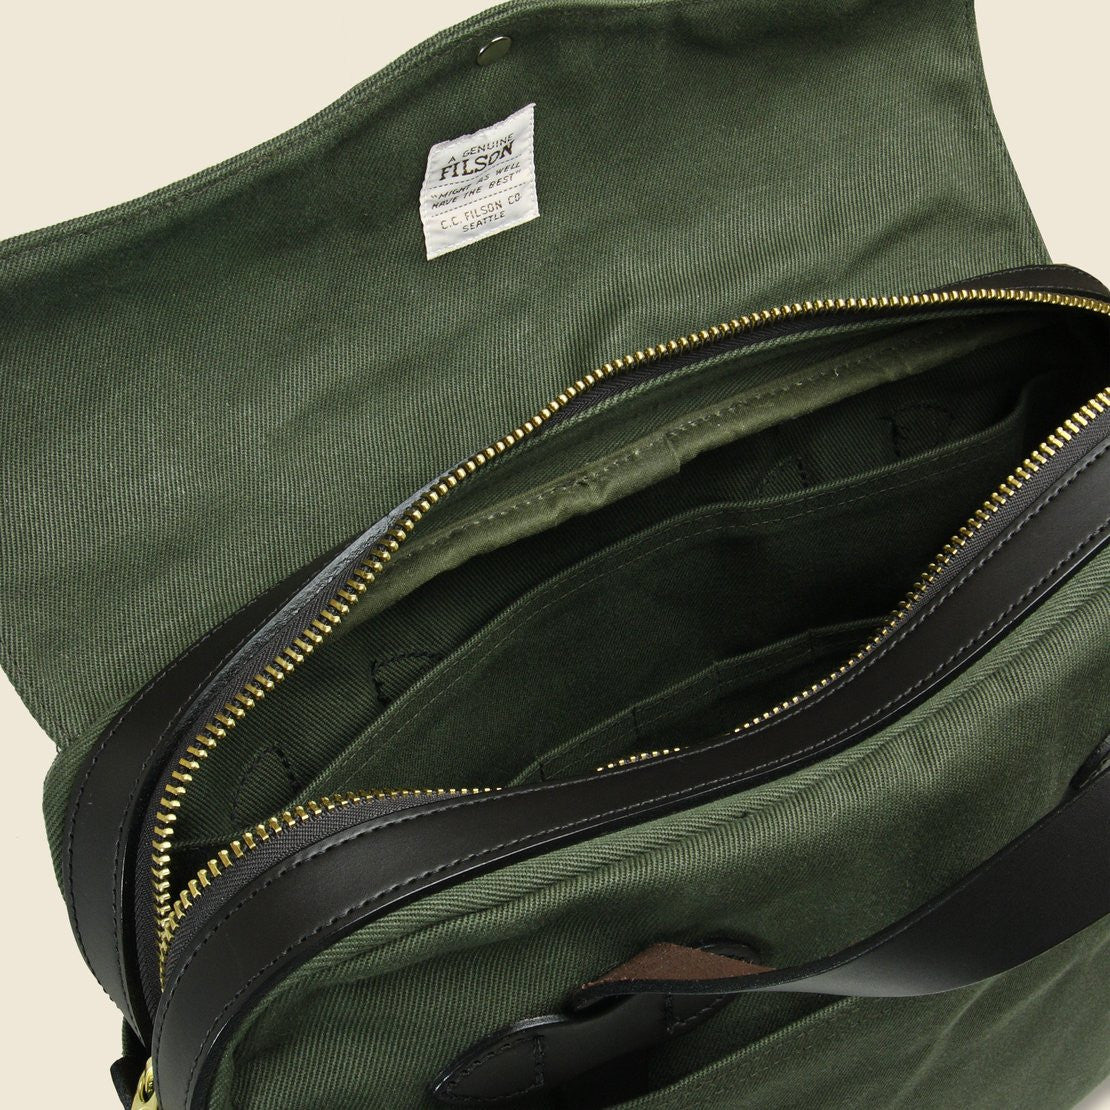 Original Briefcase - Otter Green - Filson - STAG Provisions - Accessories - Bags / Luggage